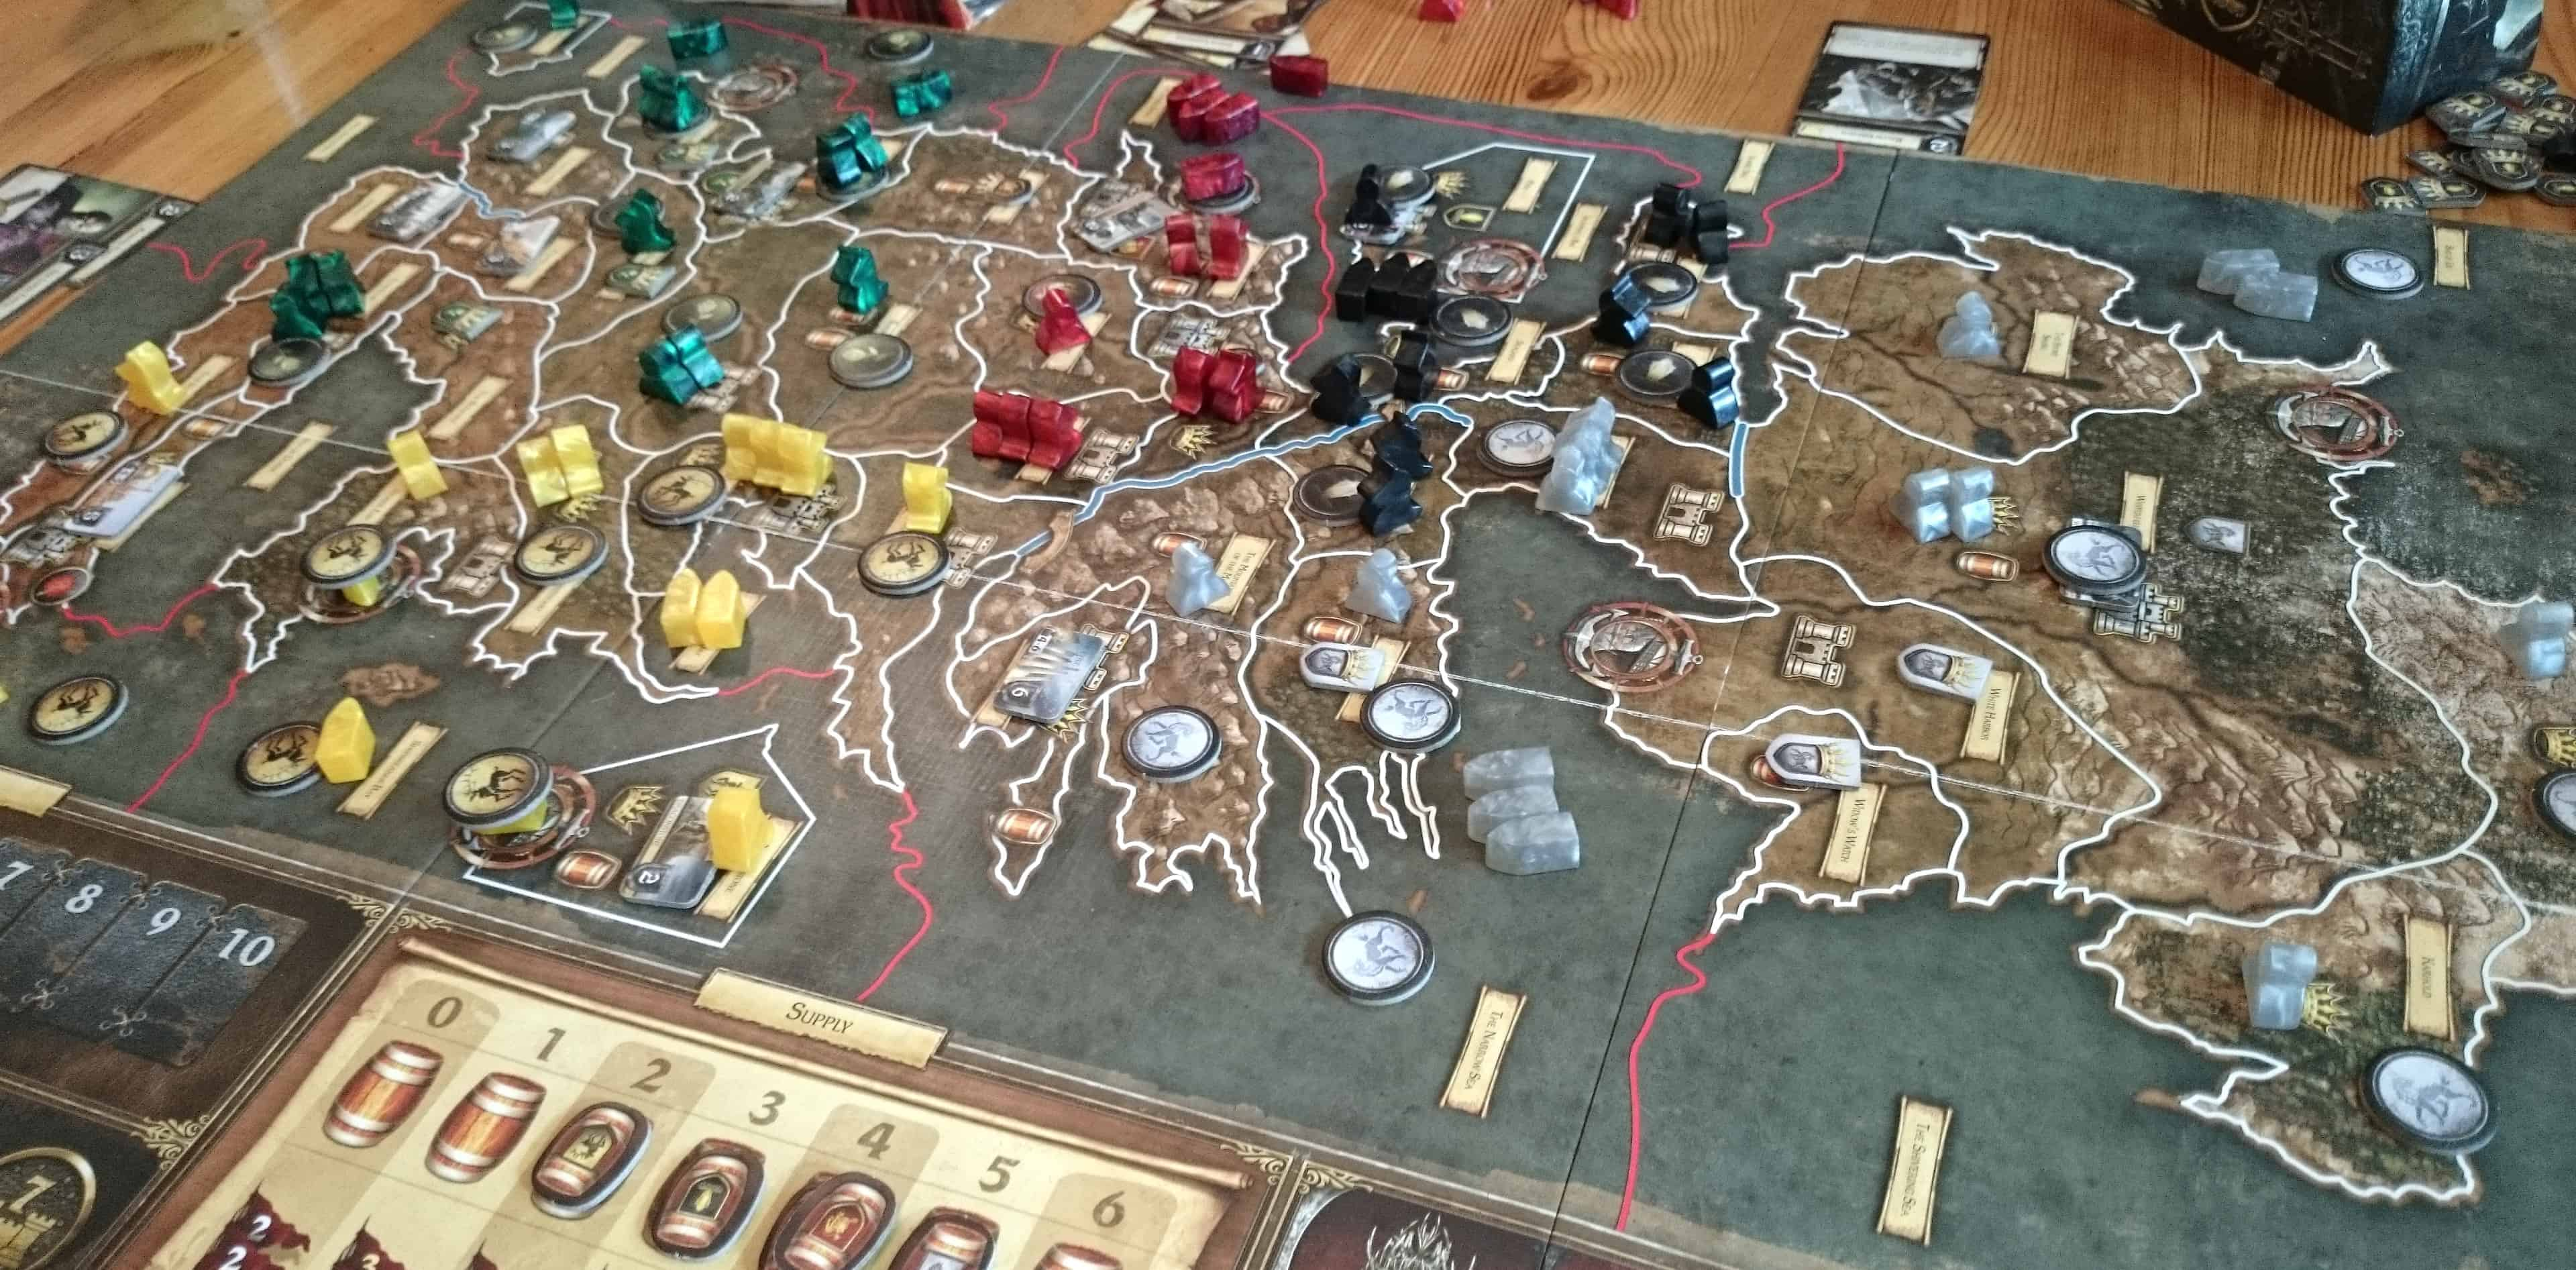 Not only is A Game of Thrones an amazing Fantasy board game, it is also